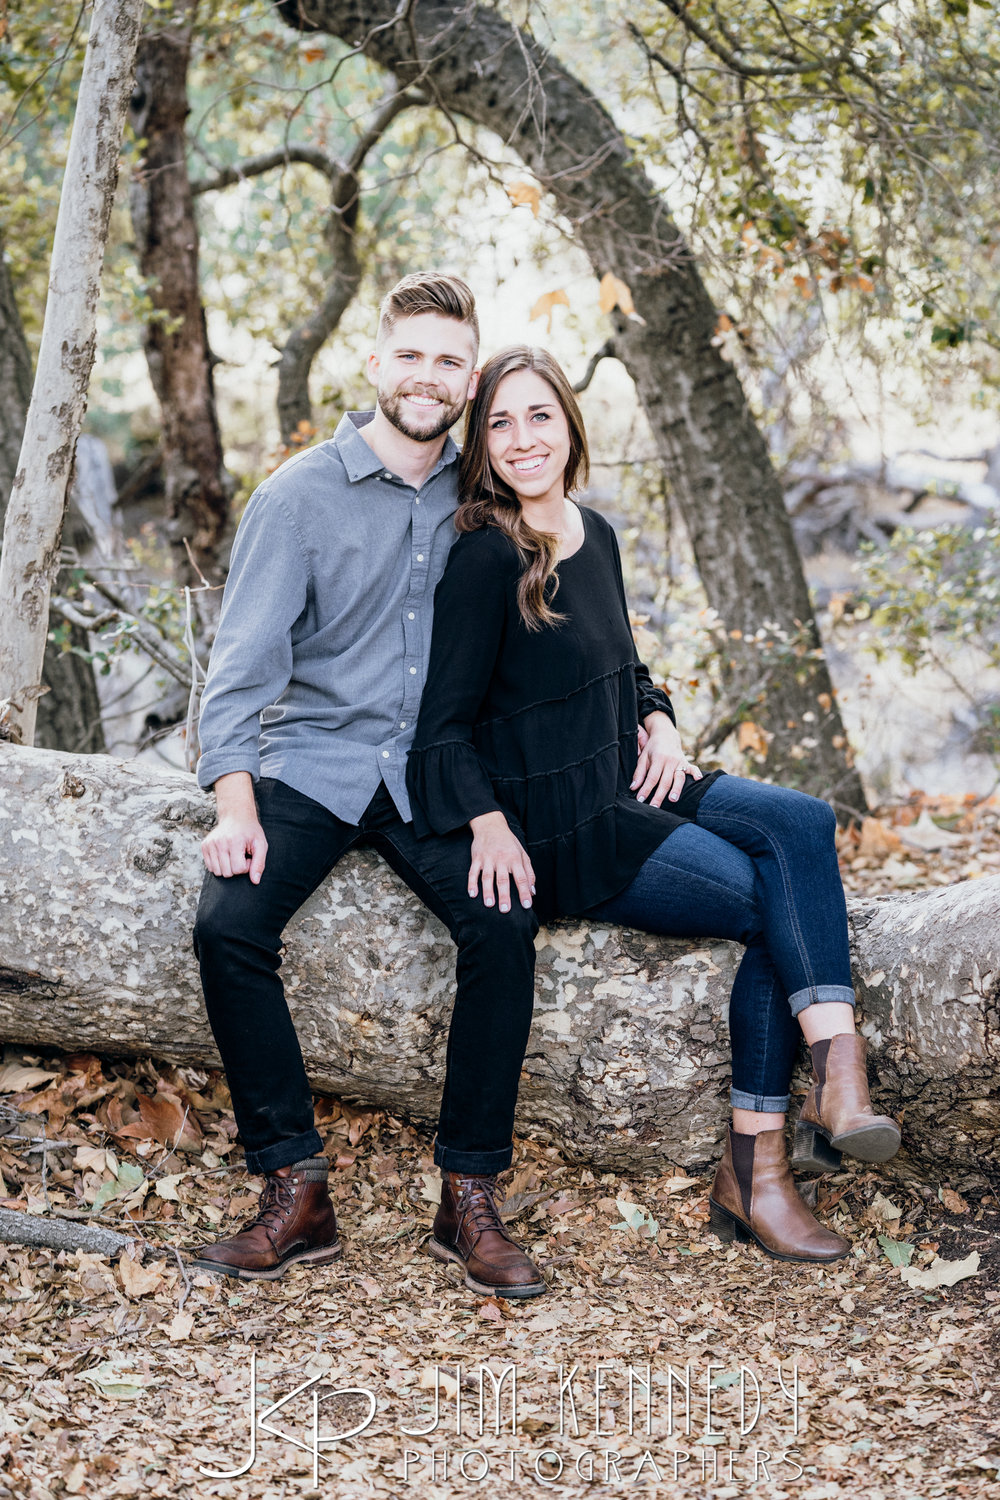 thomas-f-riley-wilderness-park-engagement-session-Leah-tyler_0010.JPG